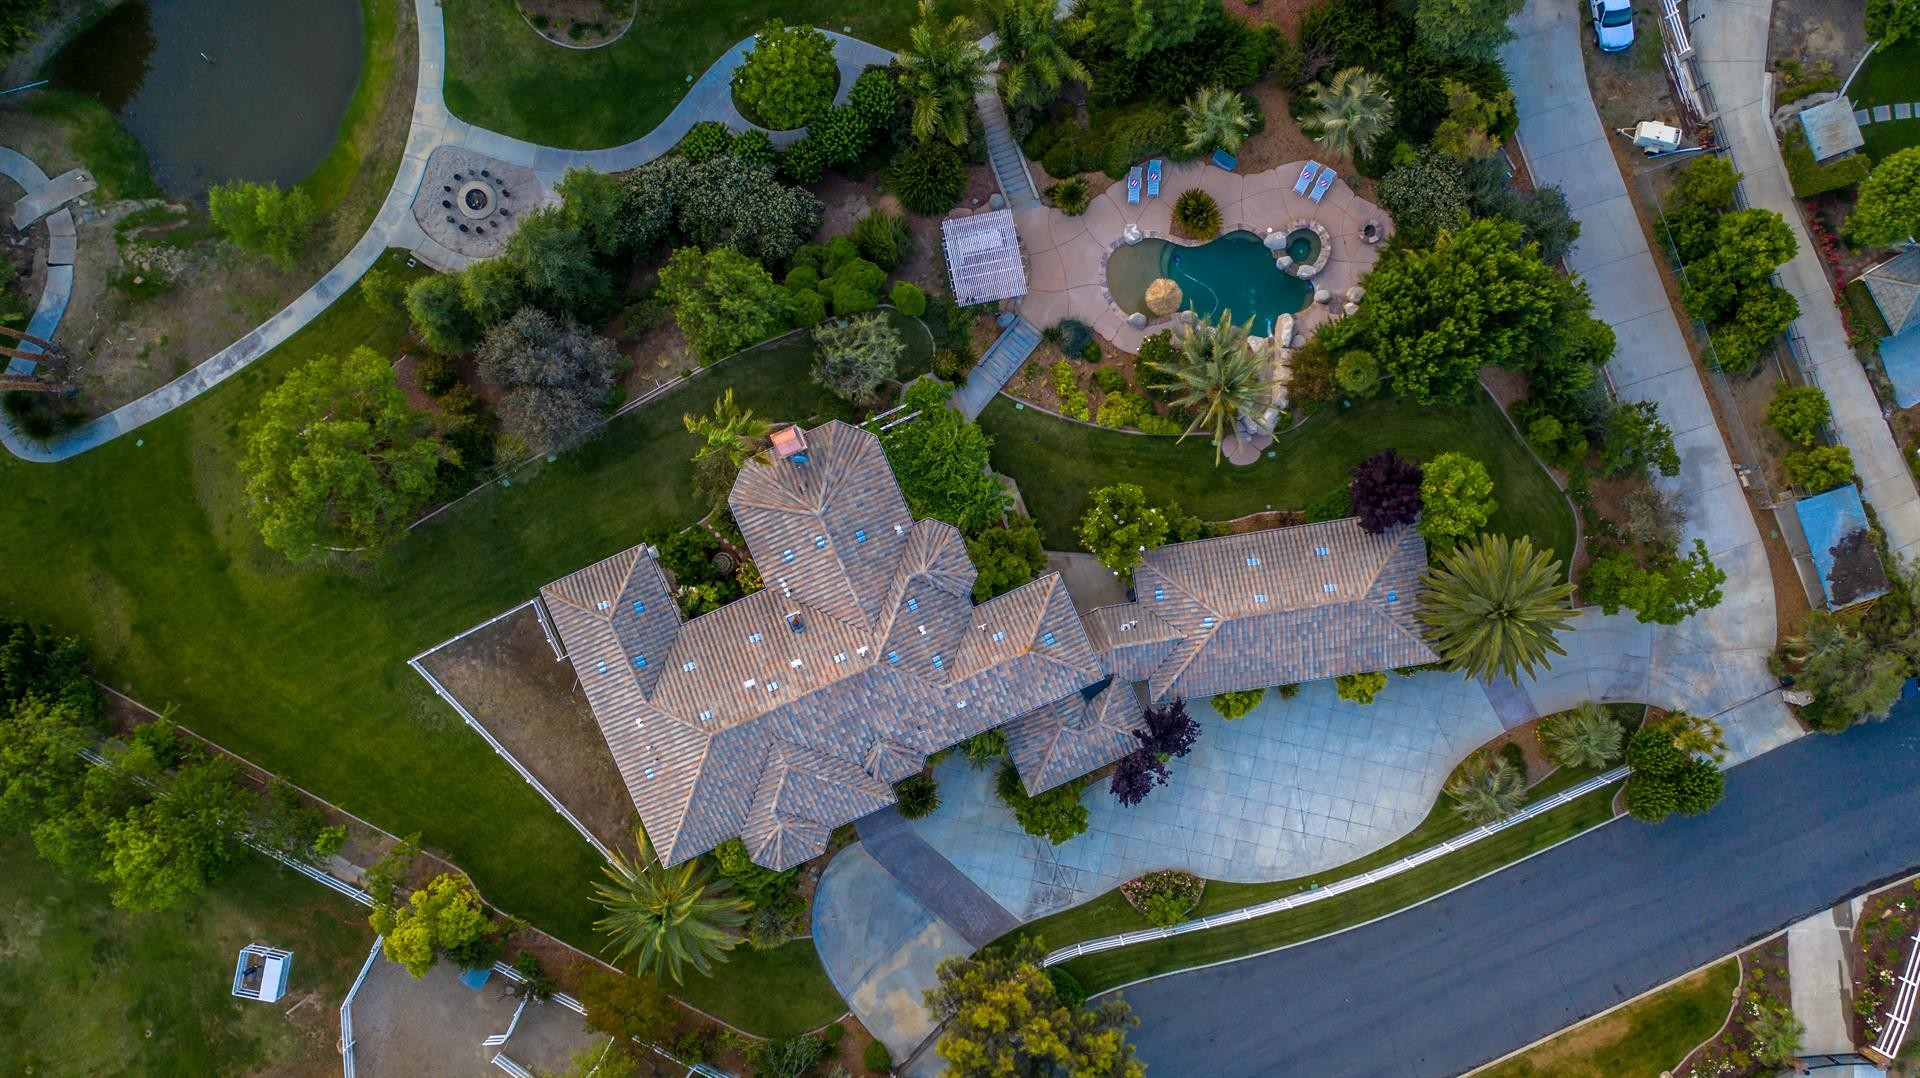 42695 arjay way a luxury single family home for sale in murrieta, california property id sw19144763 christie s international real estate